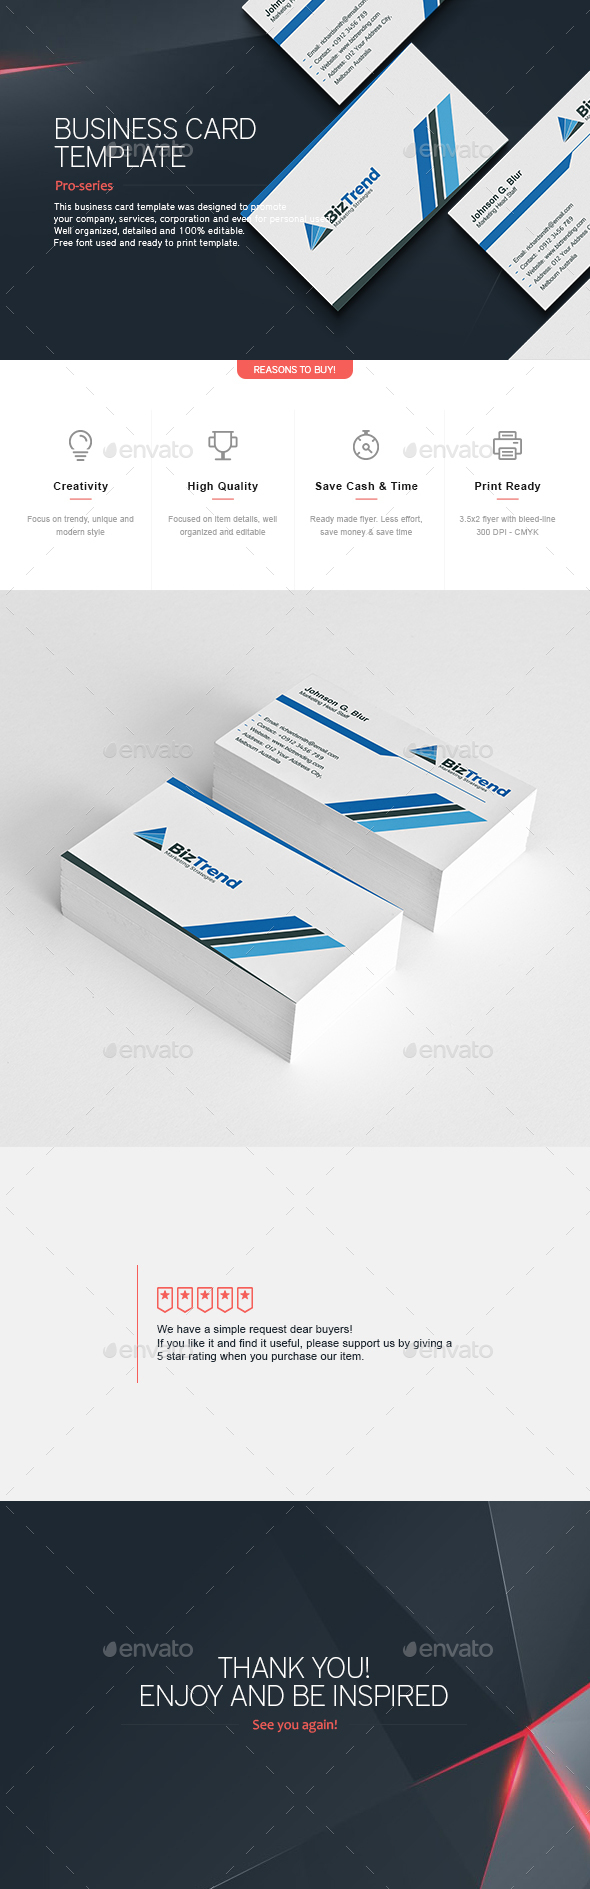 Business Card 3 - Corporate Business Cards